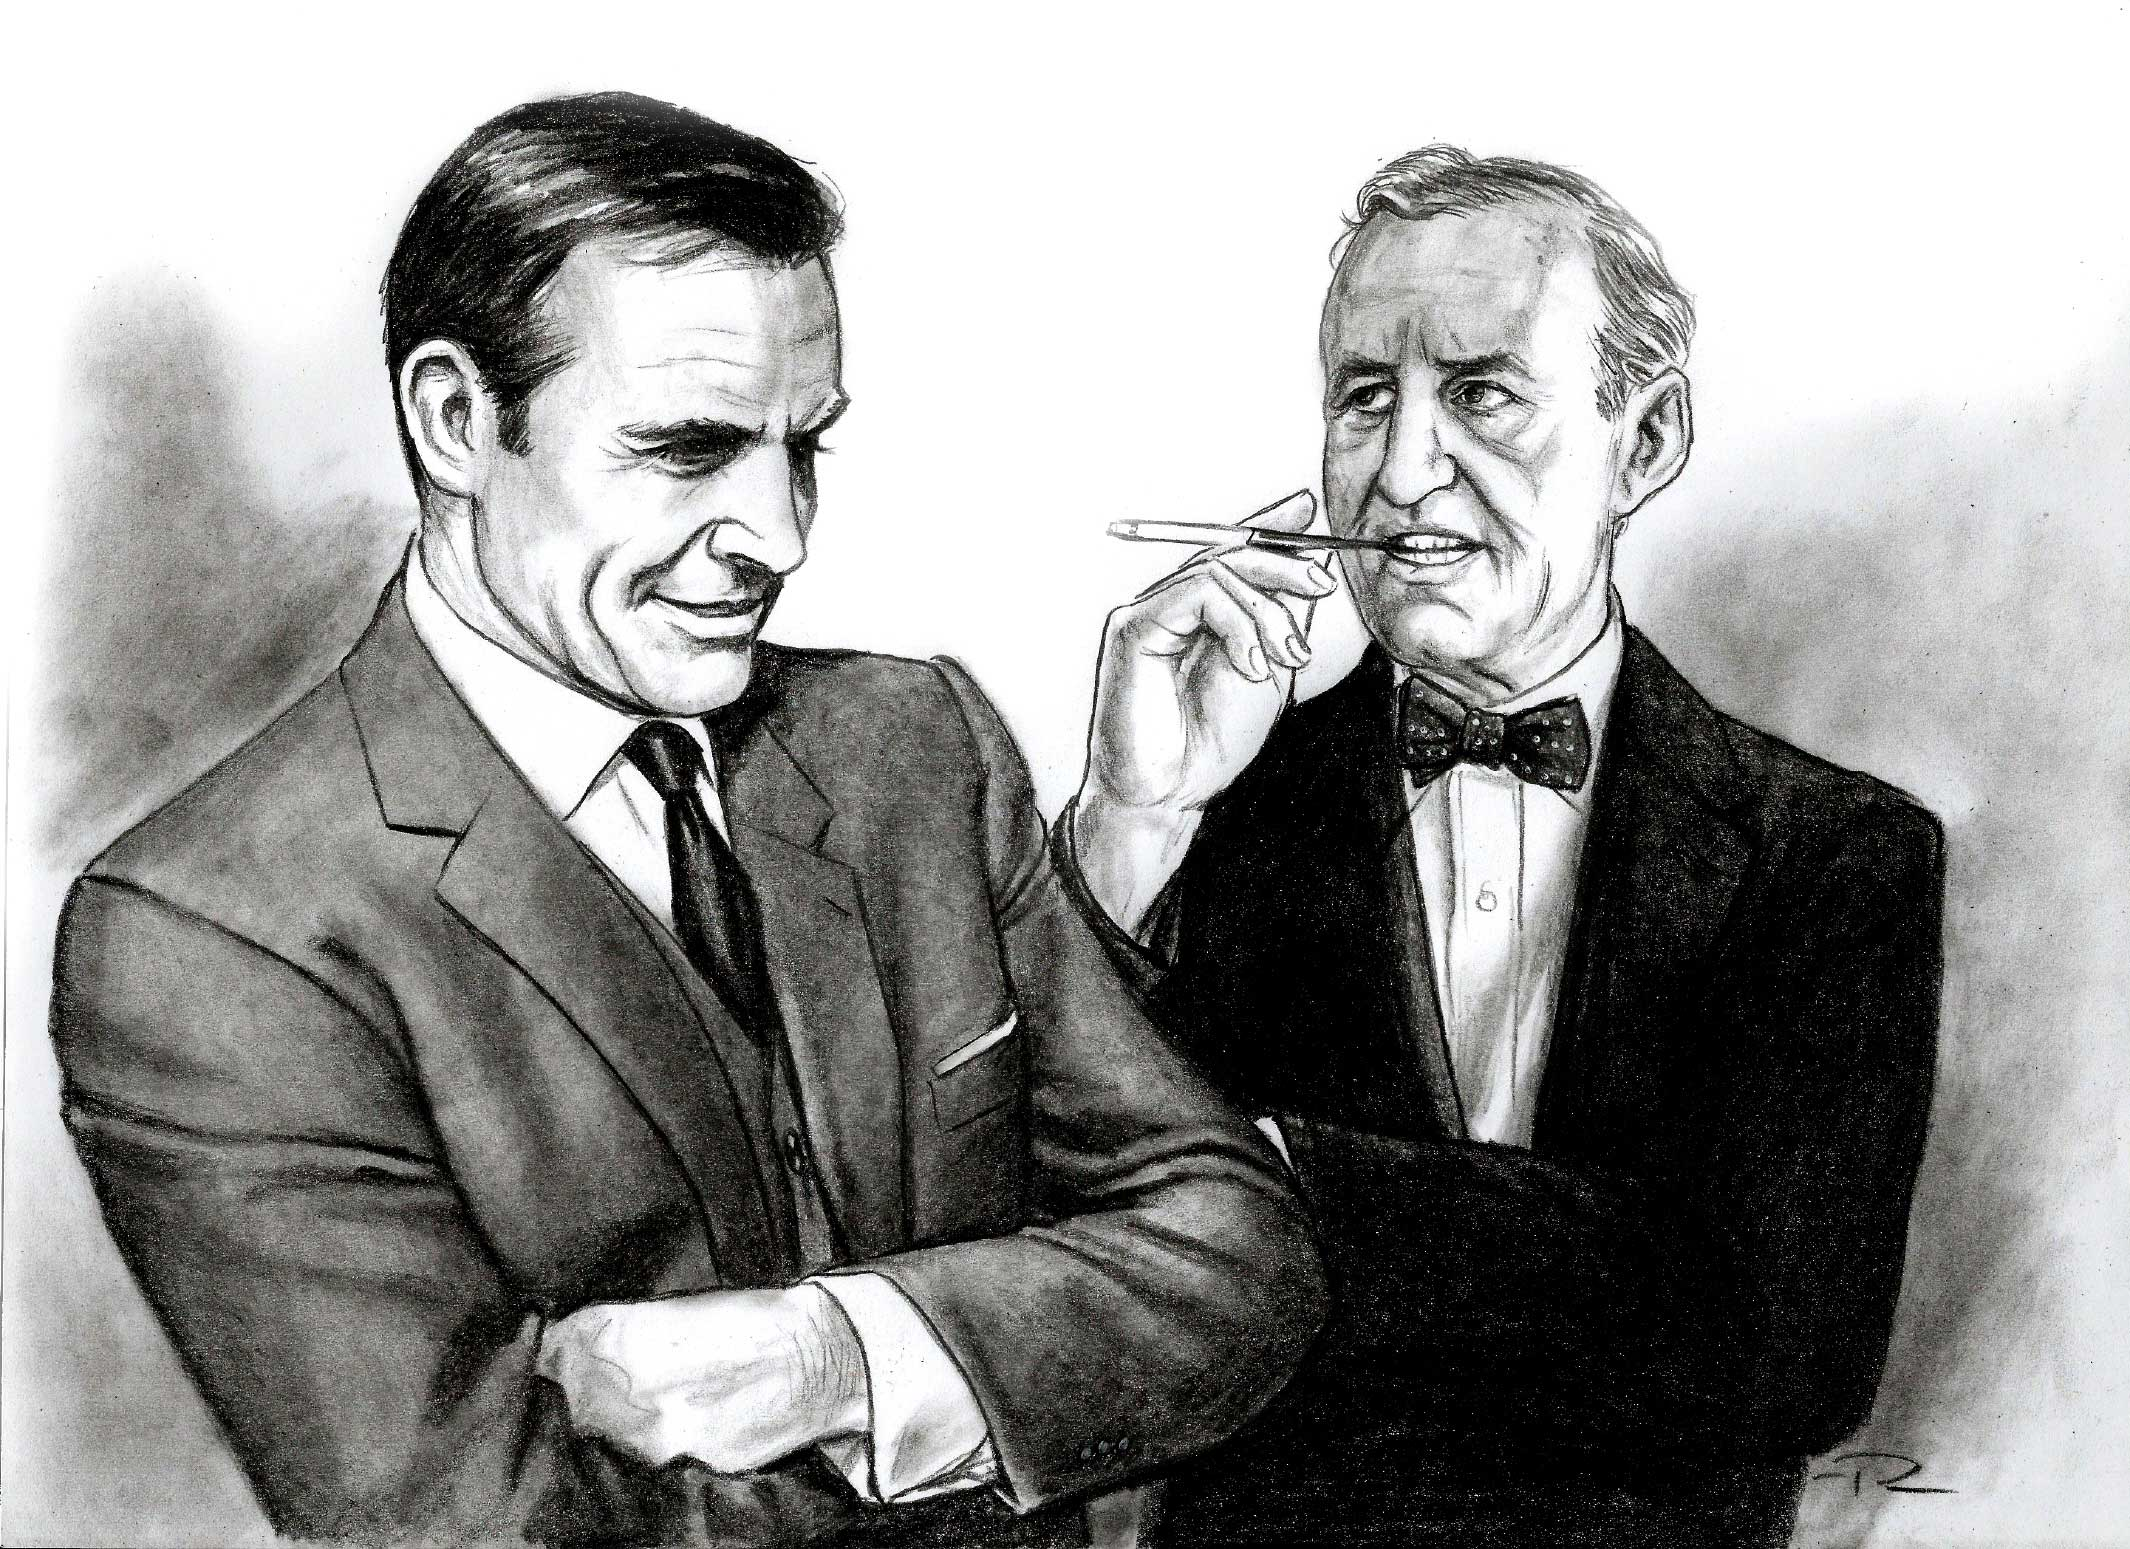 James Bond illustrations sean connery and ian fleming